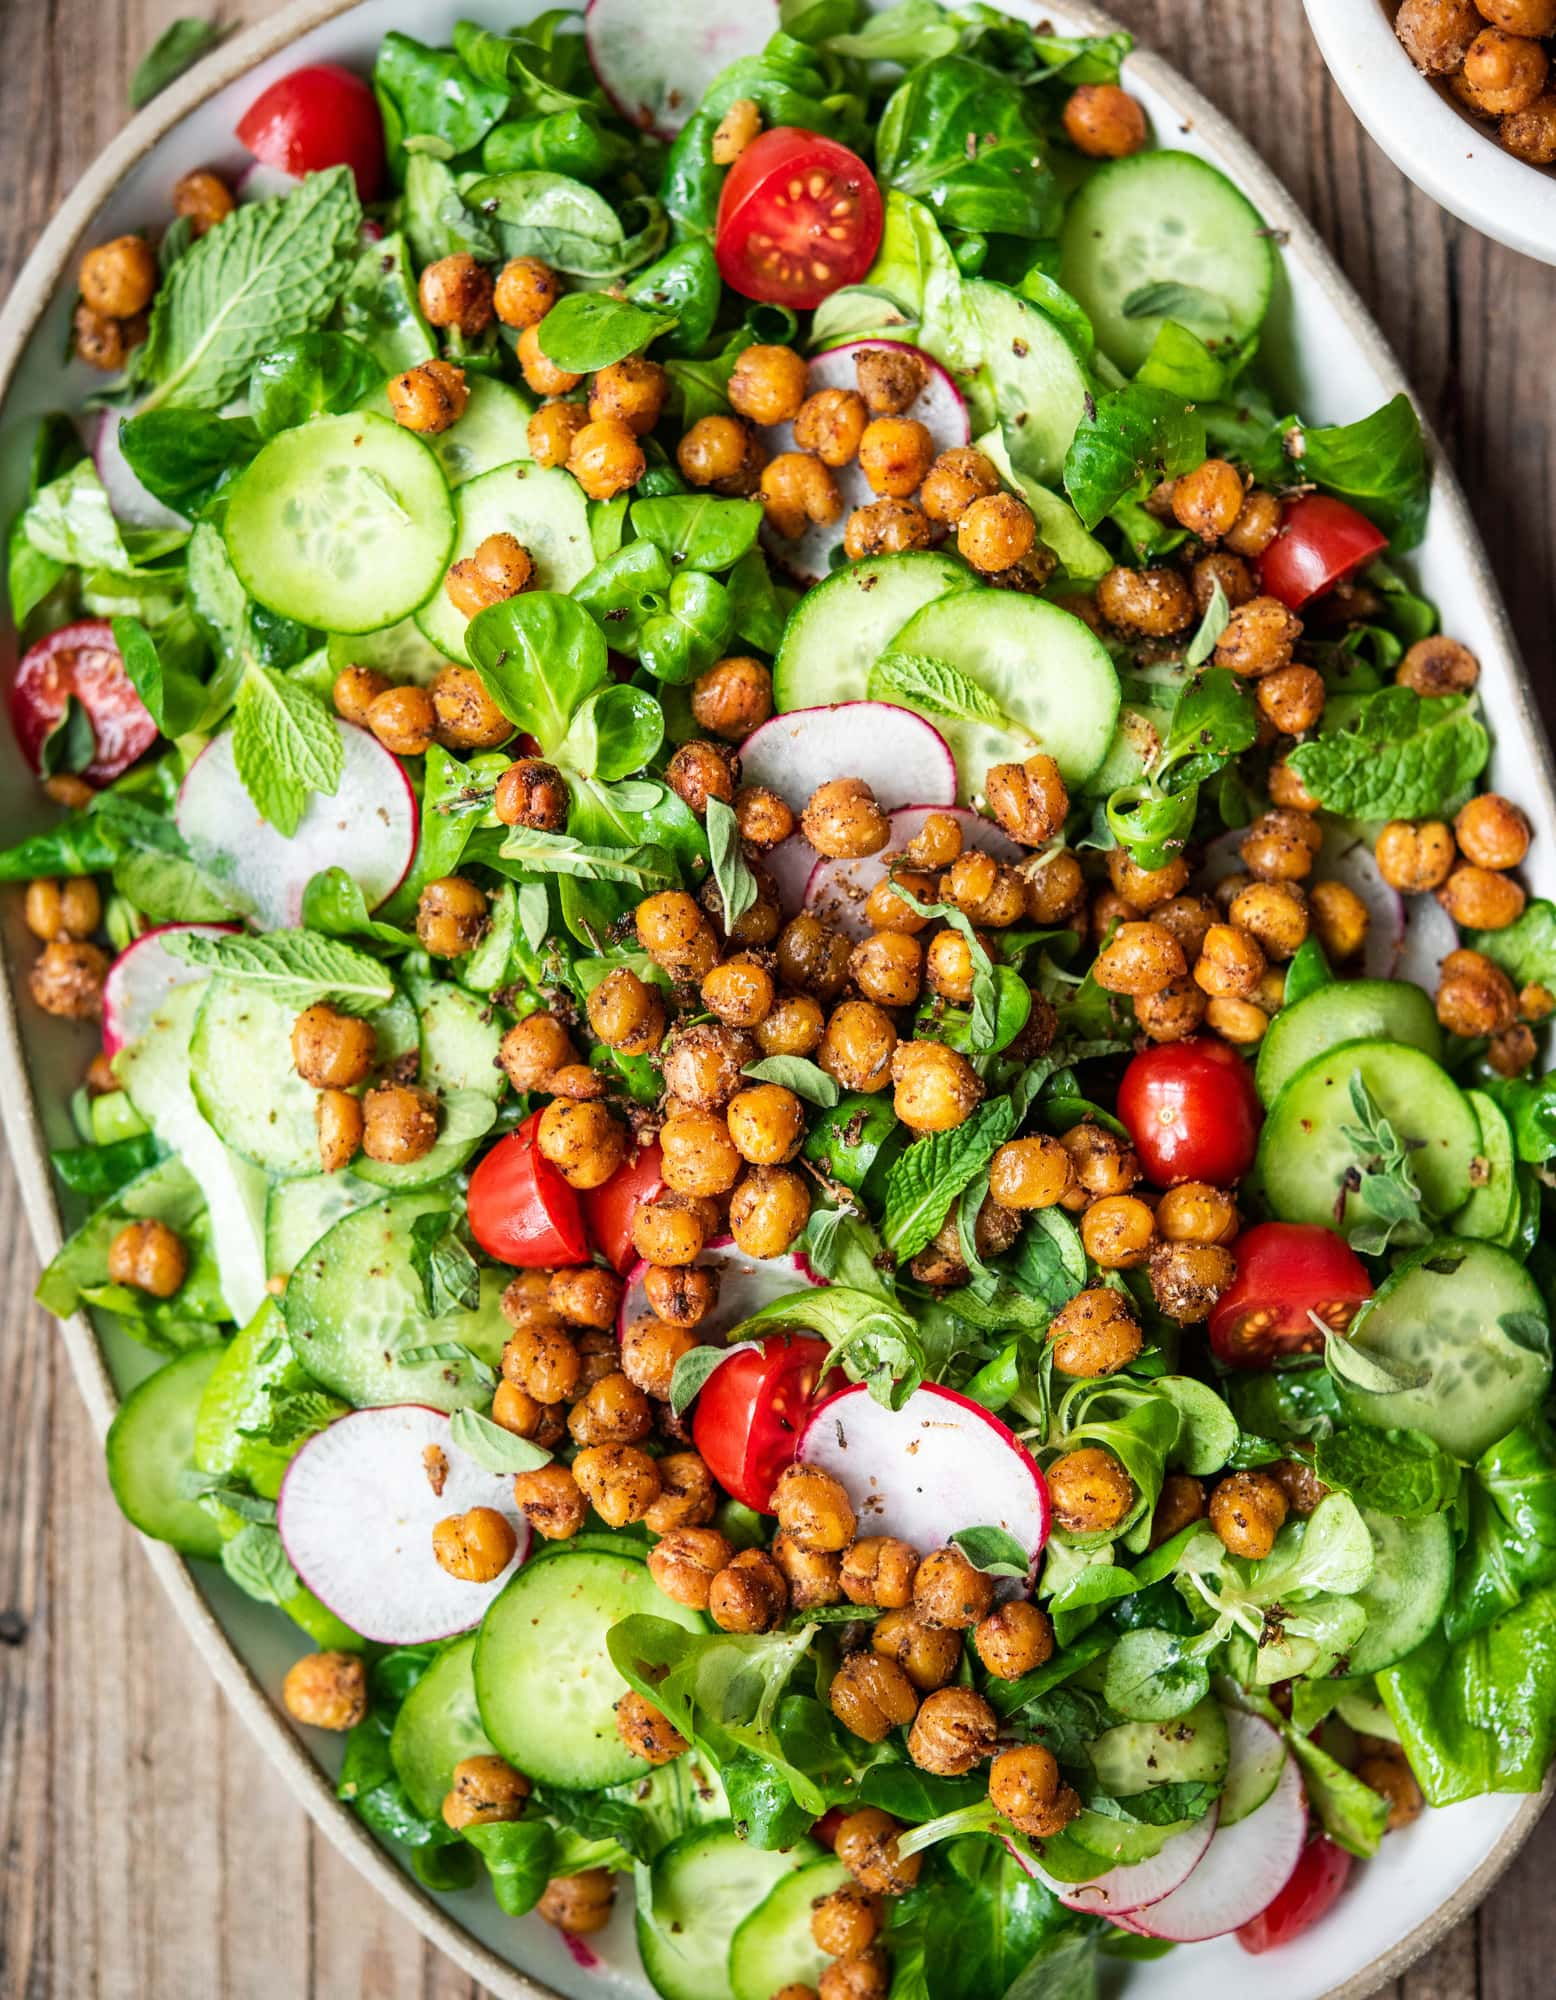 overhead view of fattoush salad with chickpeas